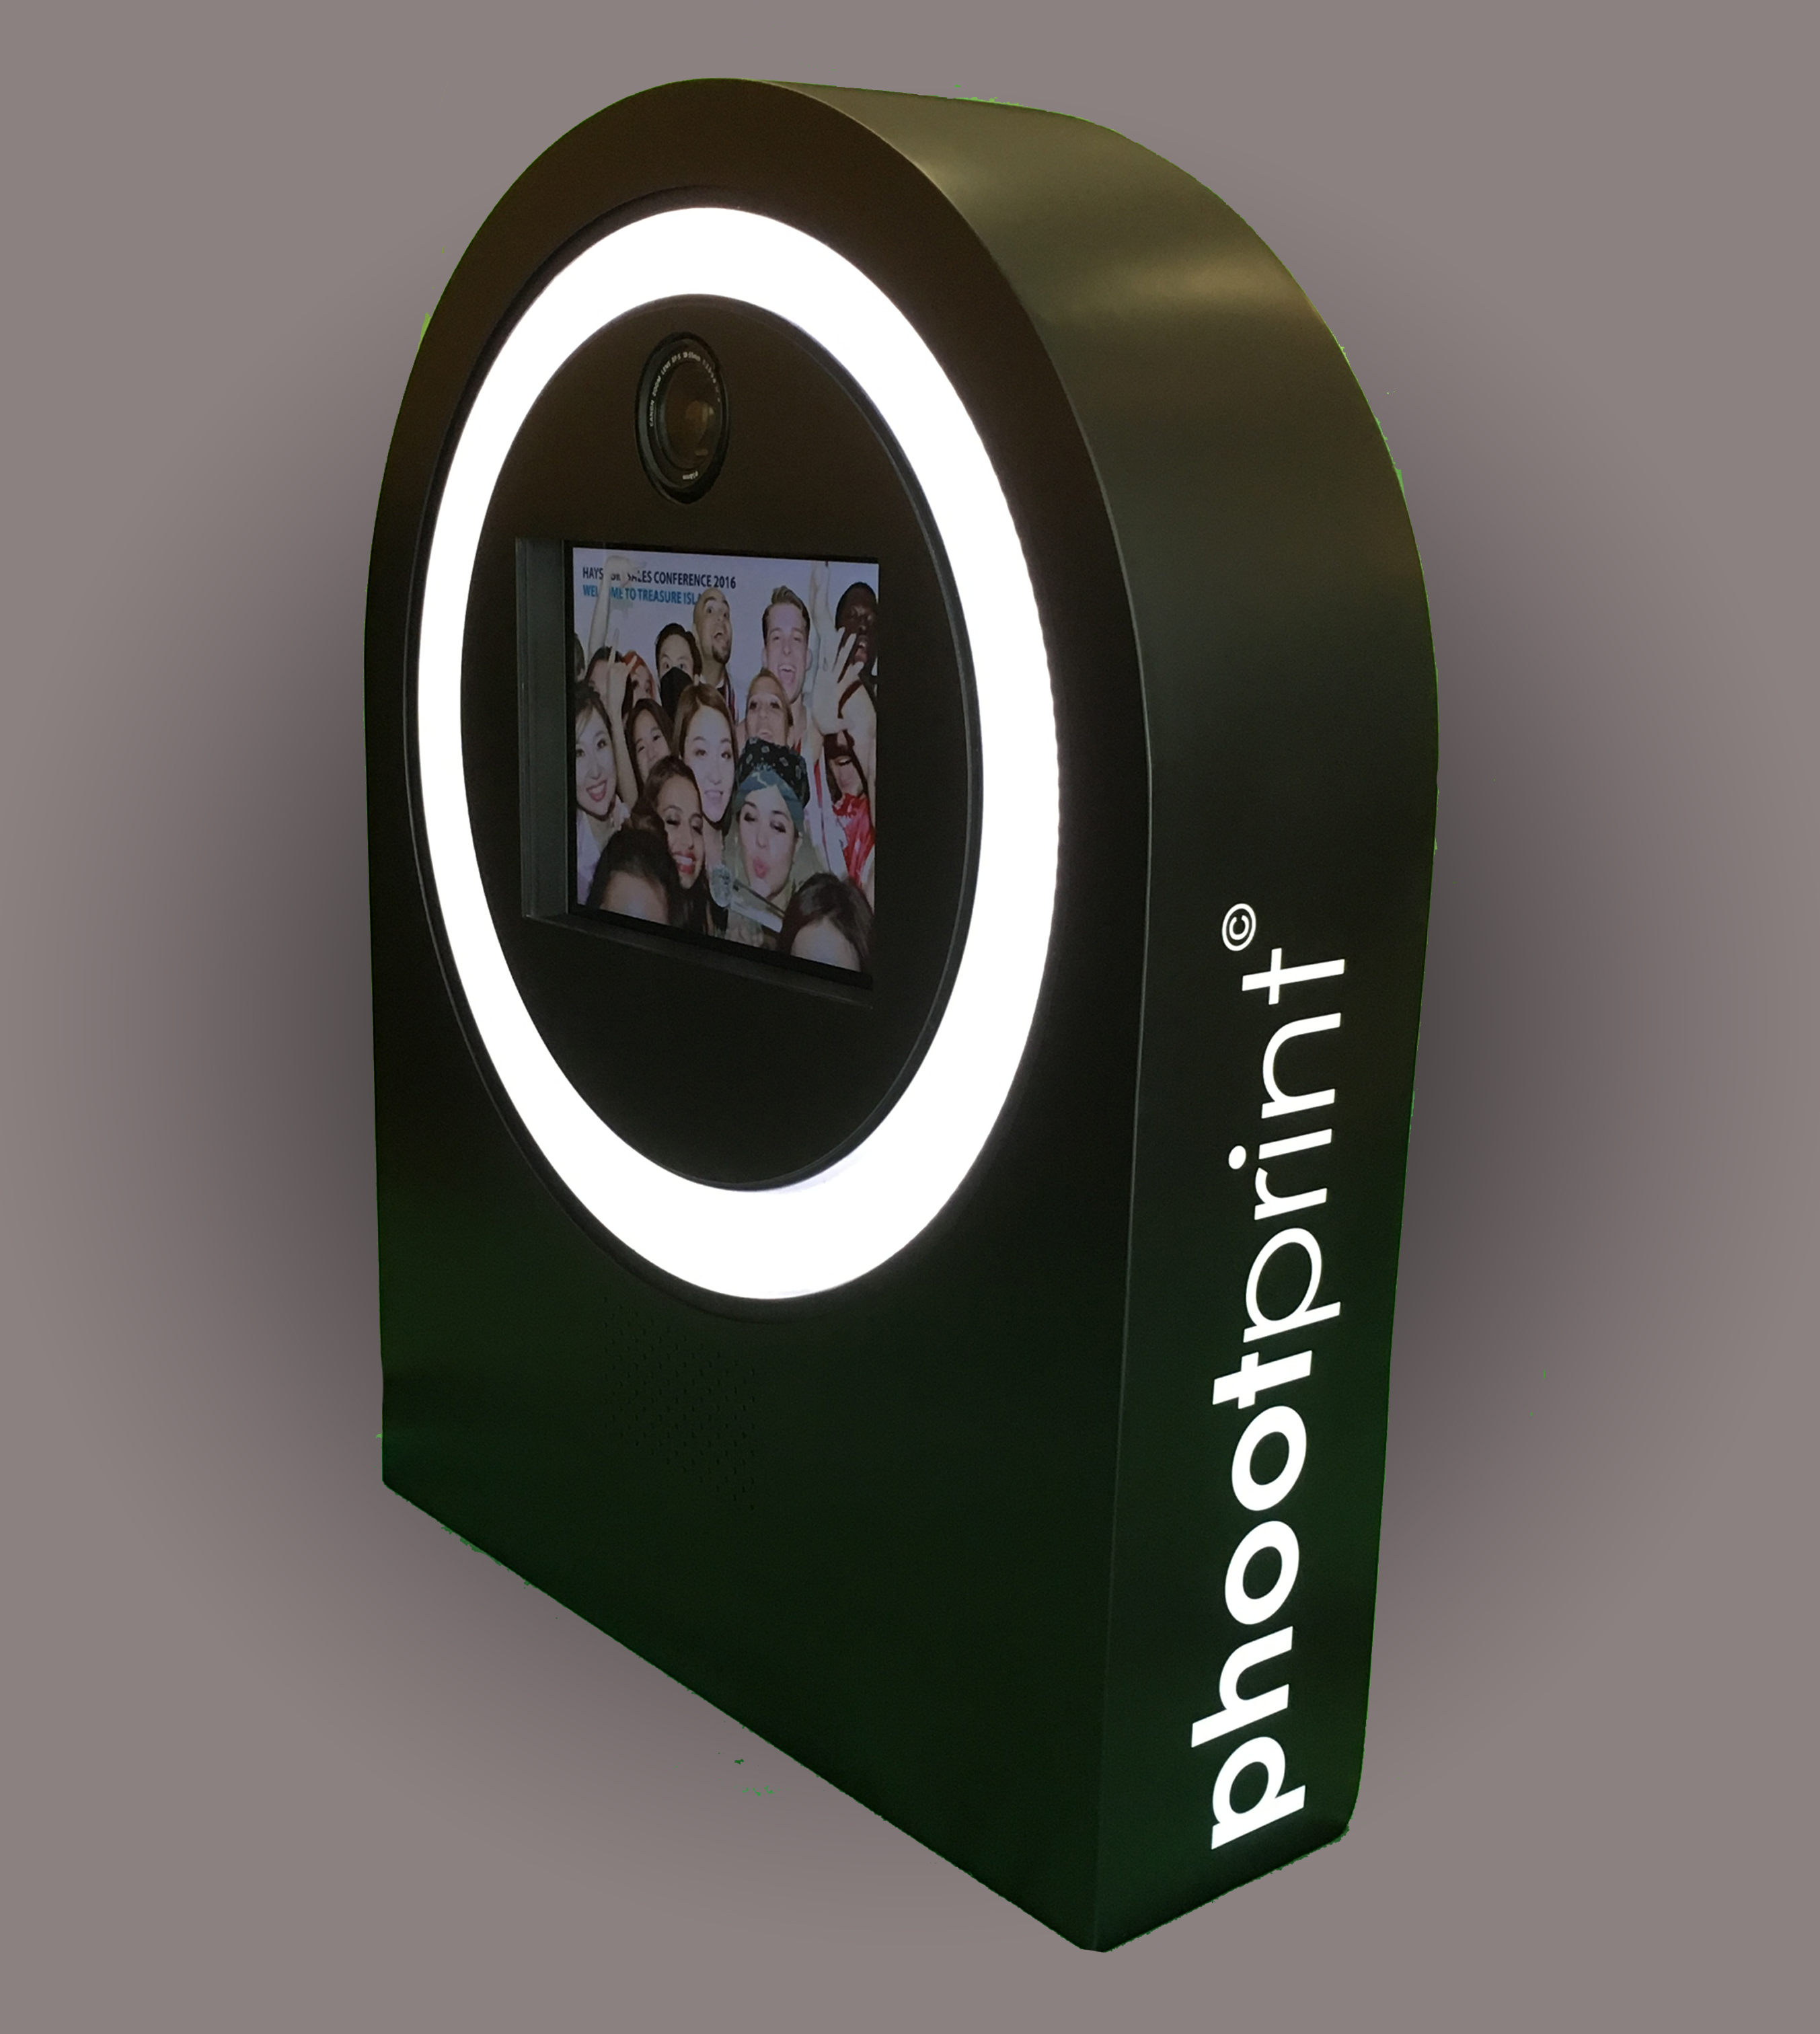 LOLA Allows You To Build An High Quality Photo Booth By Allowing Source Locally The Recommended Electronics